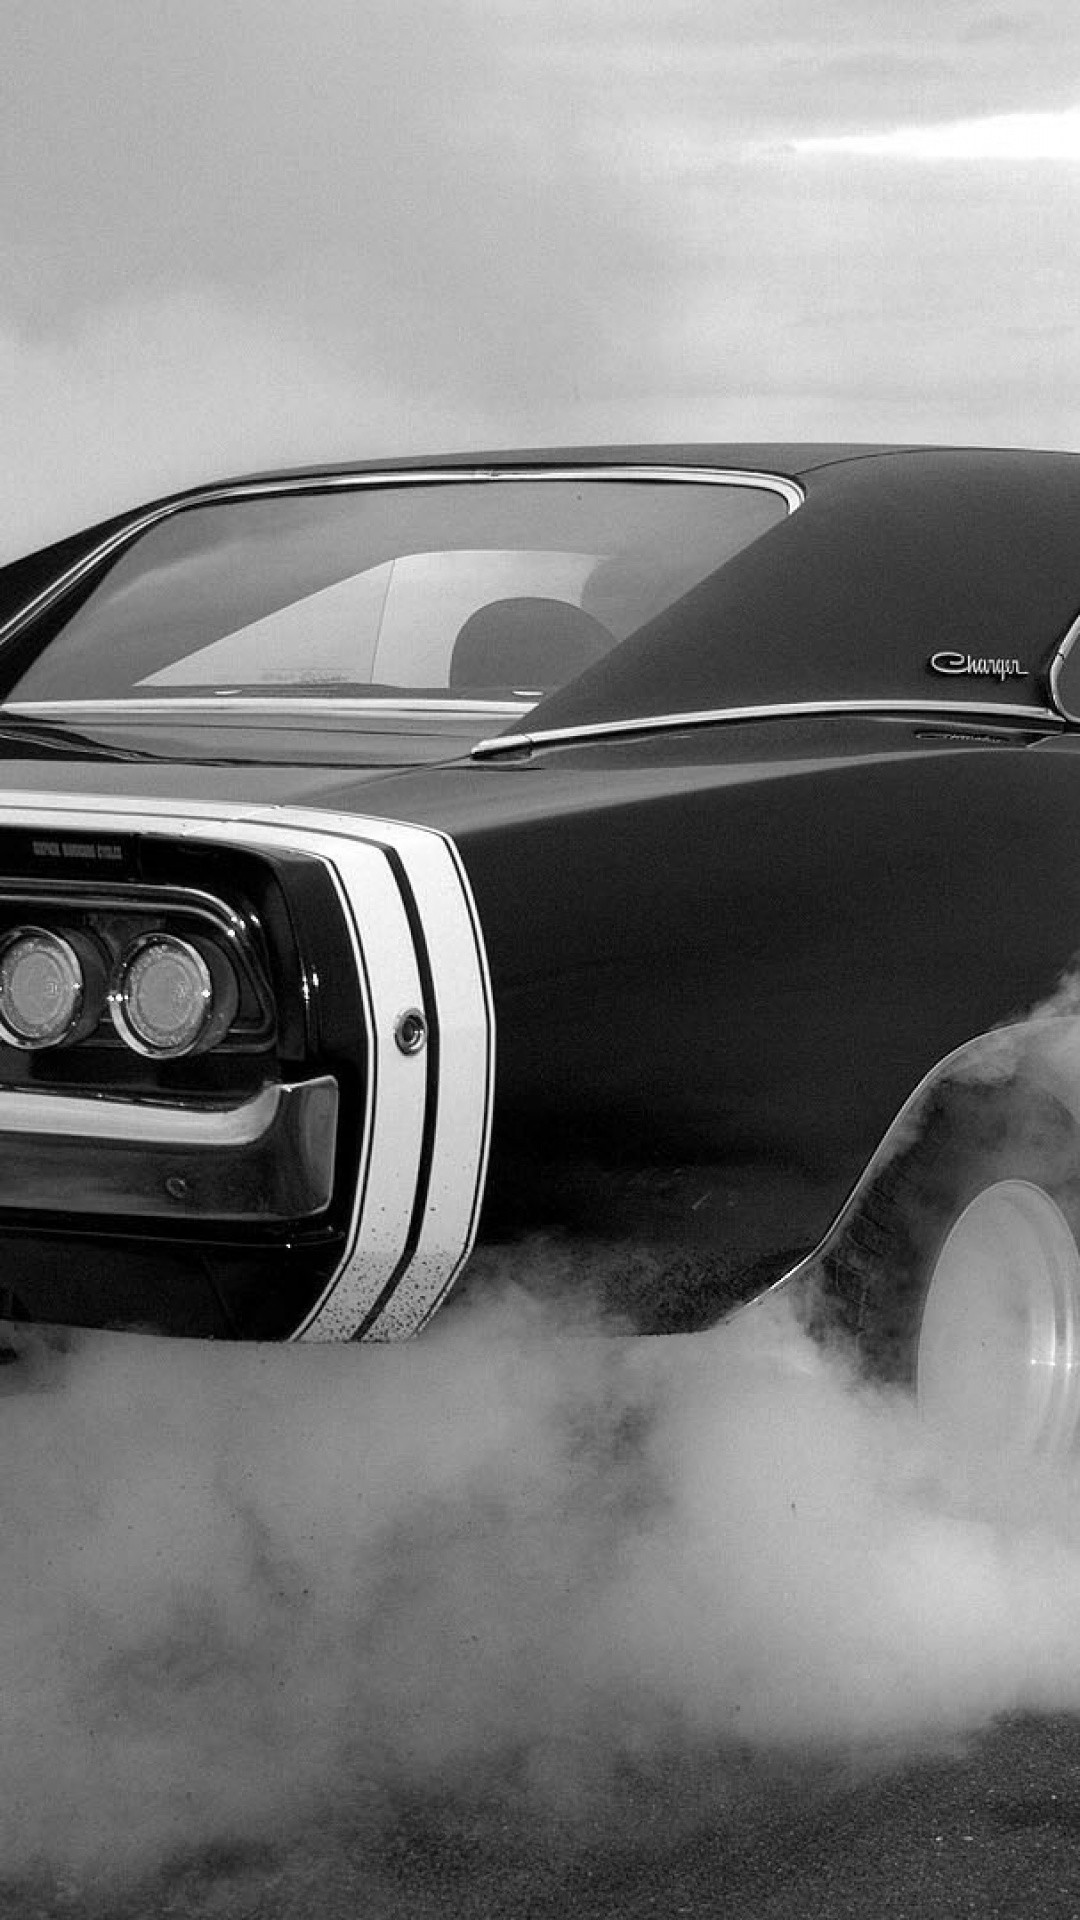 1080x1920 Muscle Car Burnout Wallpaper Muscle Car Muscle Car Burnout